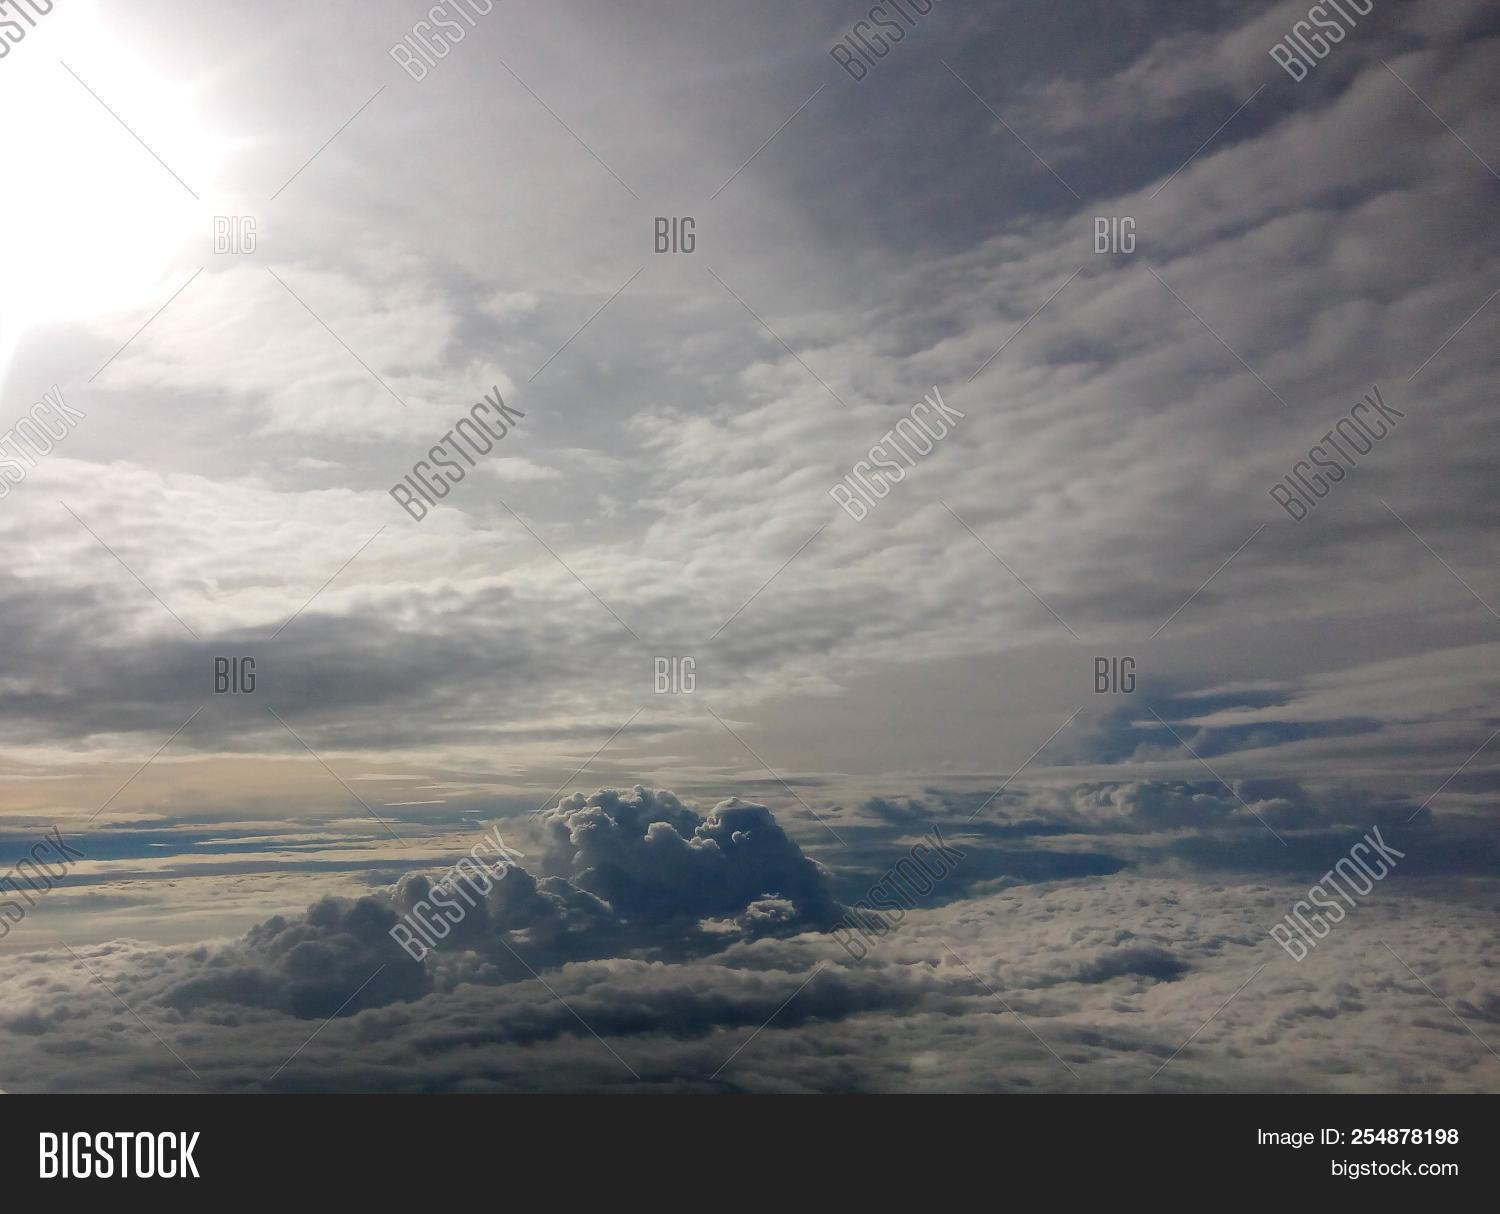 Cloud Aerosol Image & Photo (Free Trial) | Bigstock